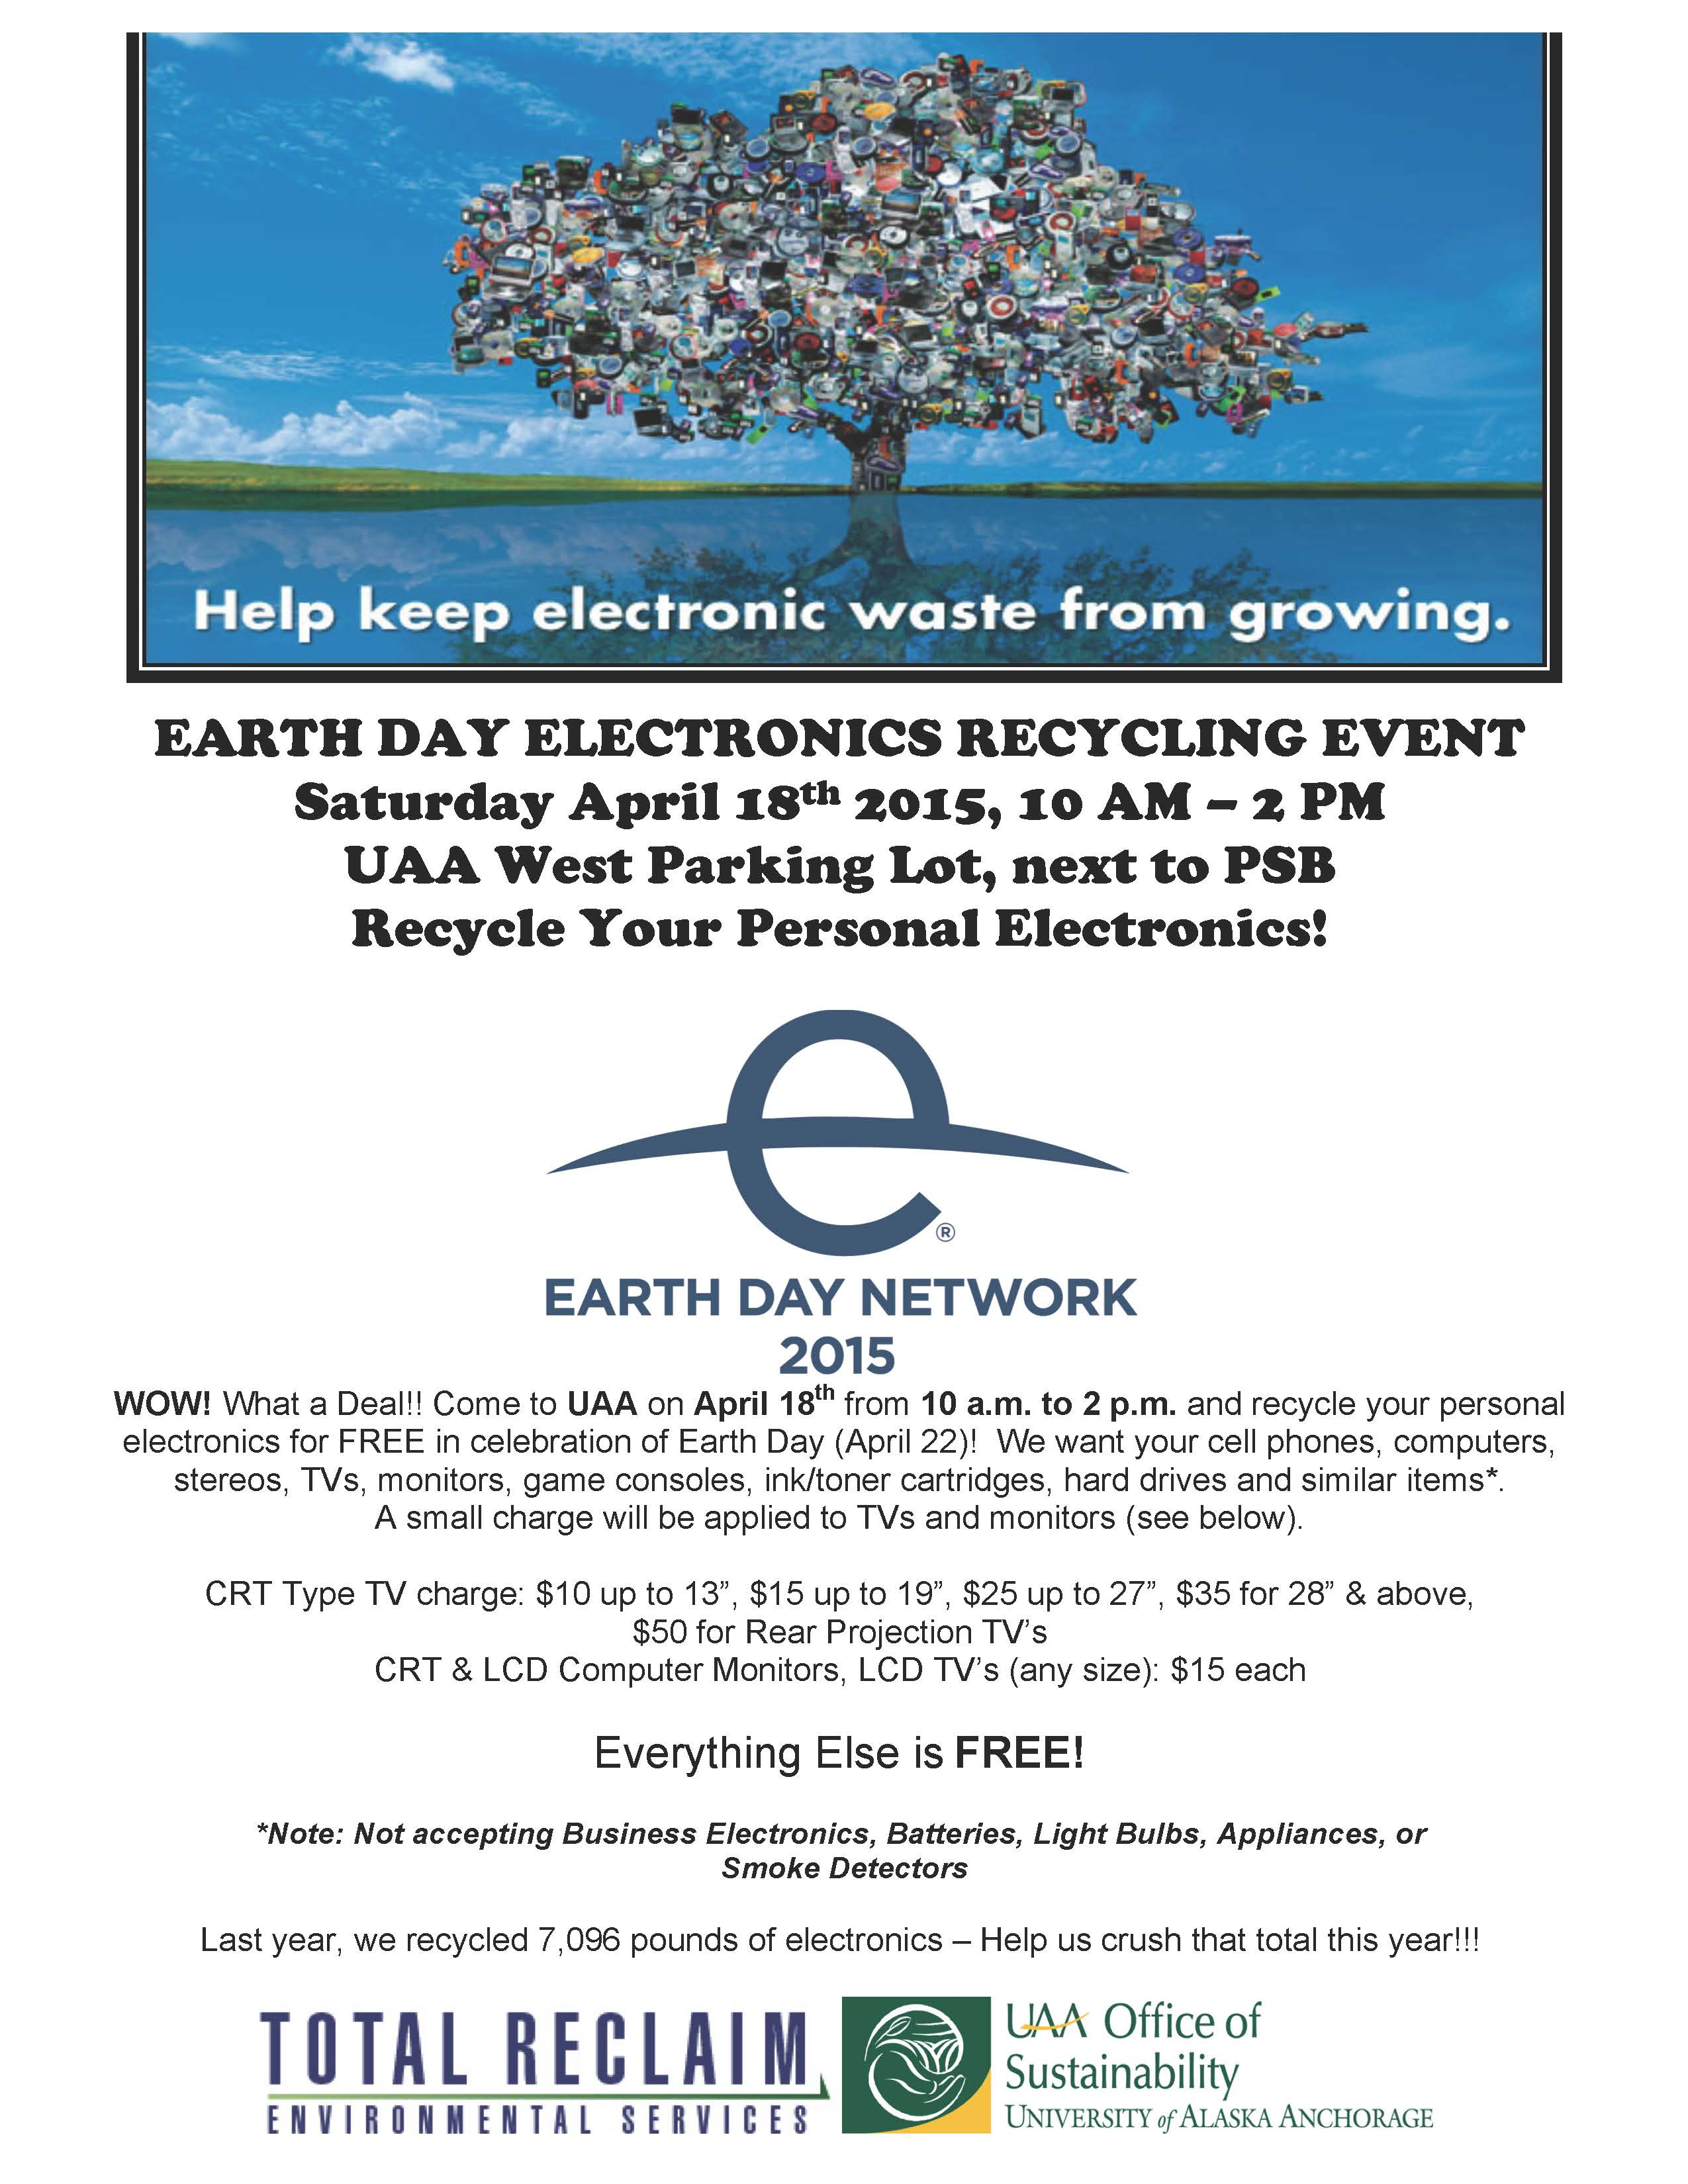 UAA Office of Sustainability Earth Day Electronics Recycling Event